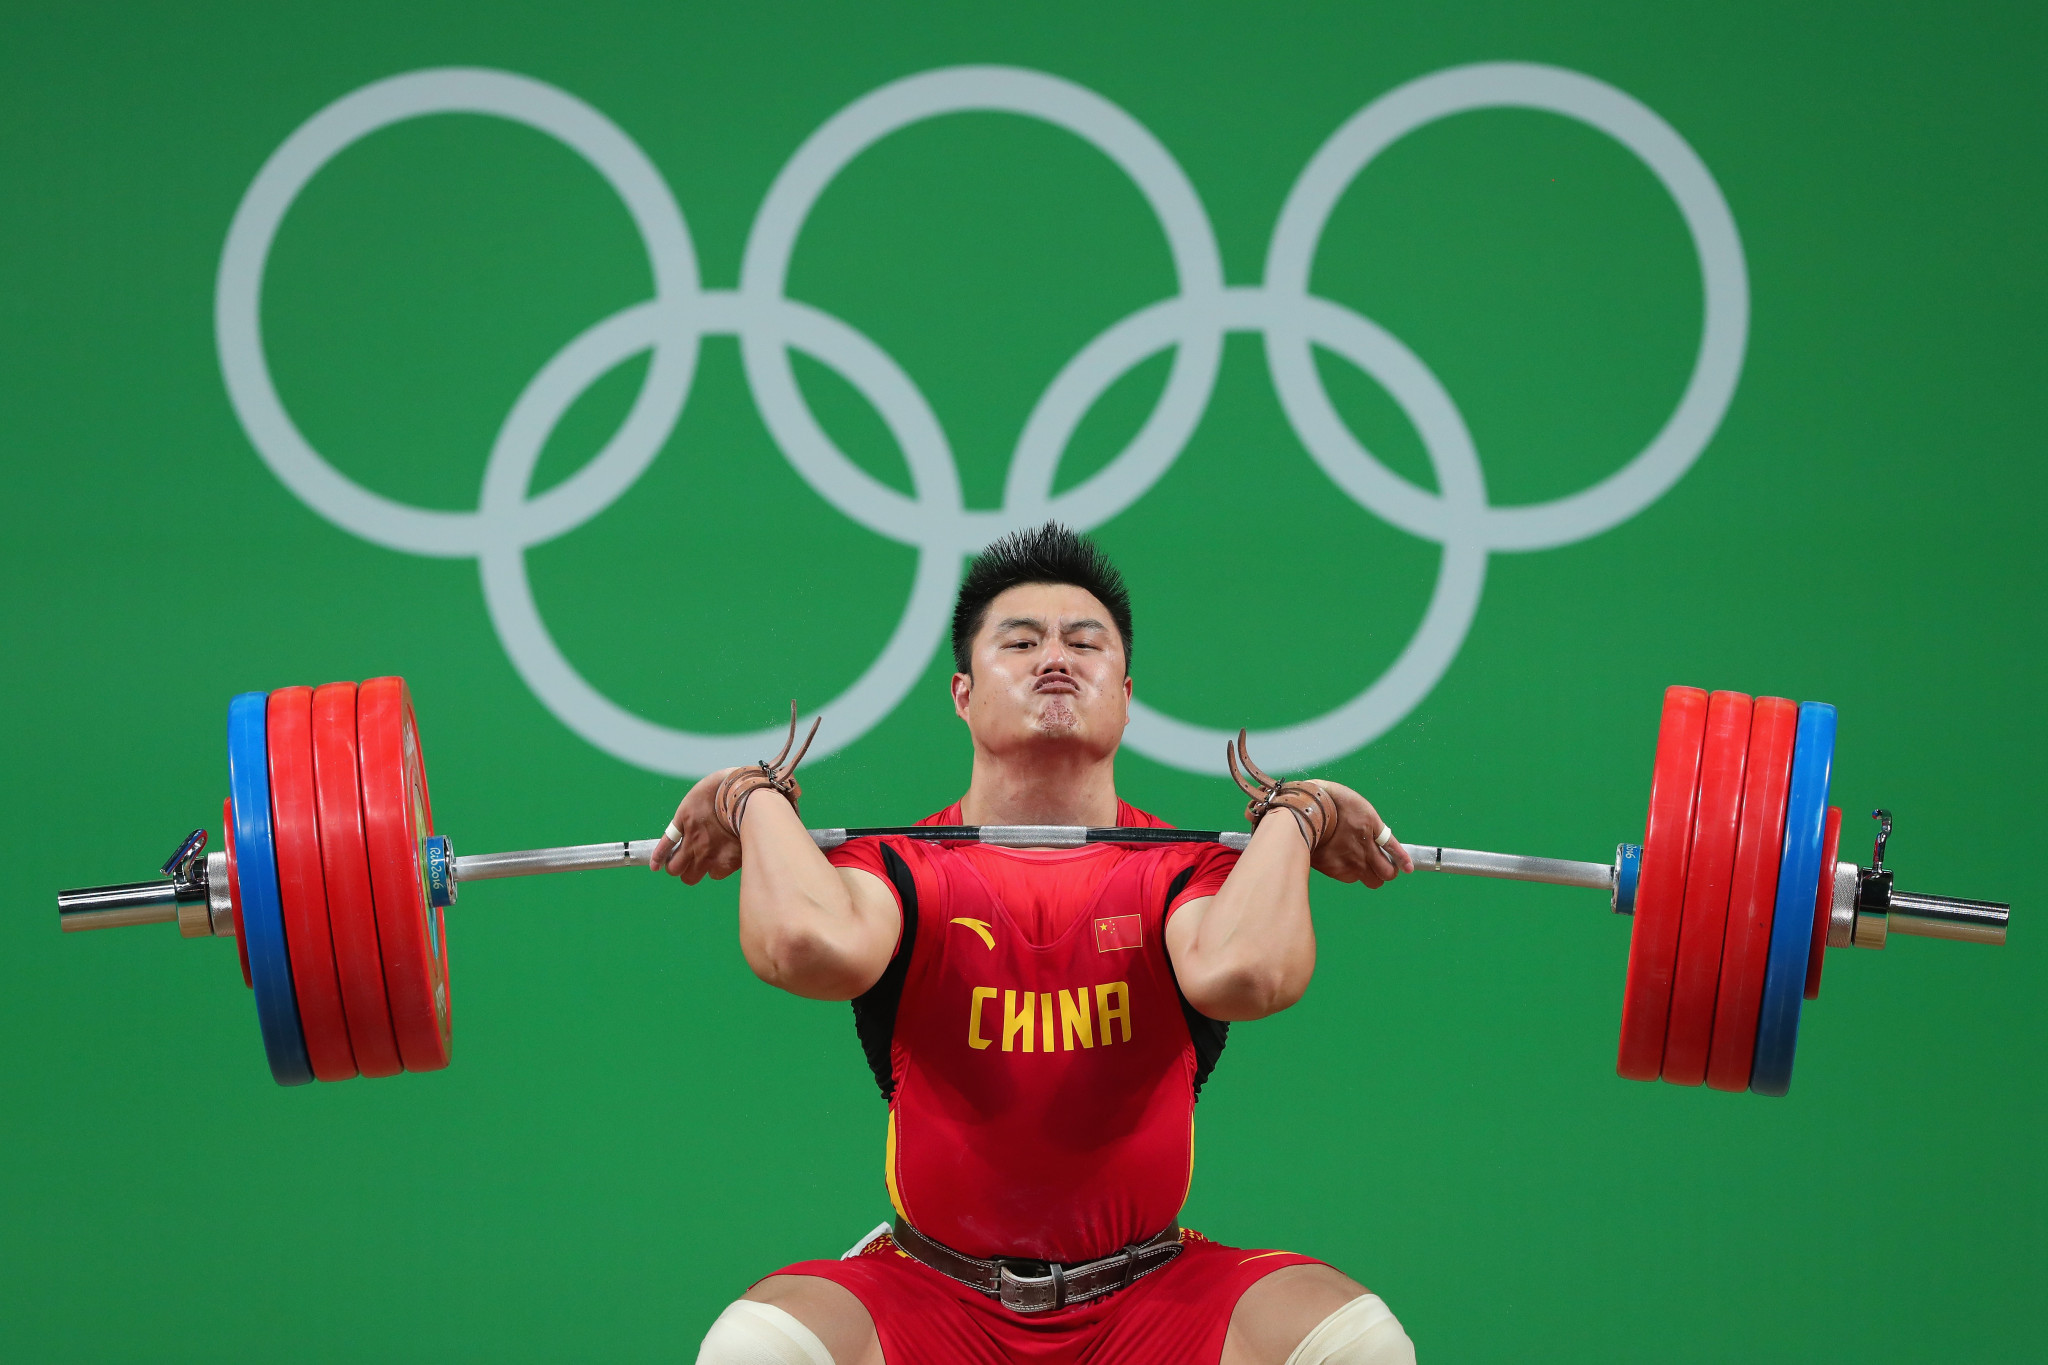 Yang Zhe secured two of the three available gold medals in the men's 109kg division ©Getty Images